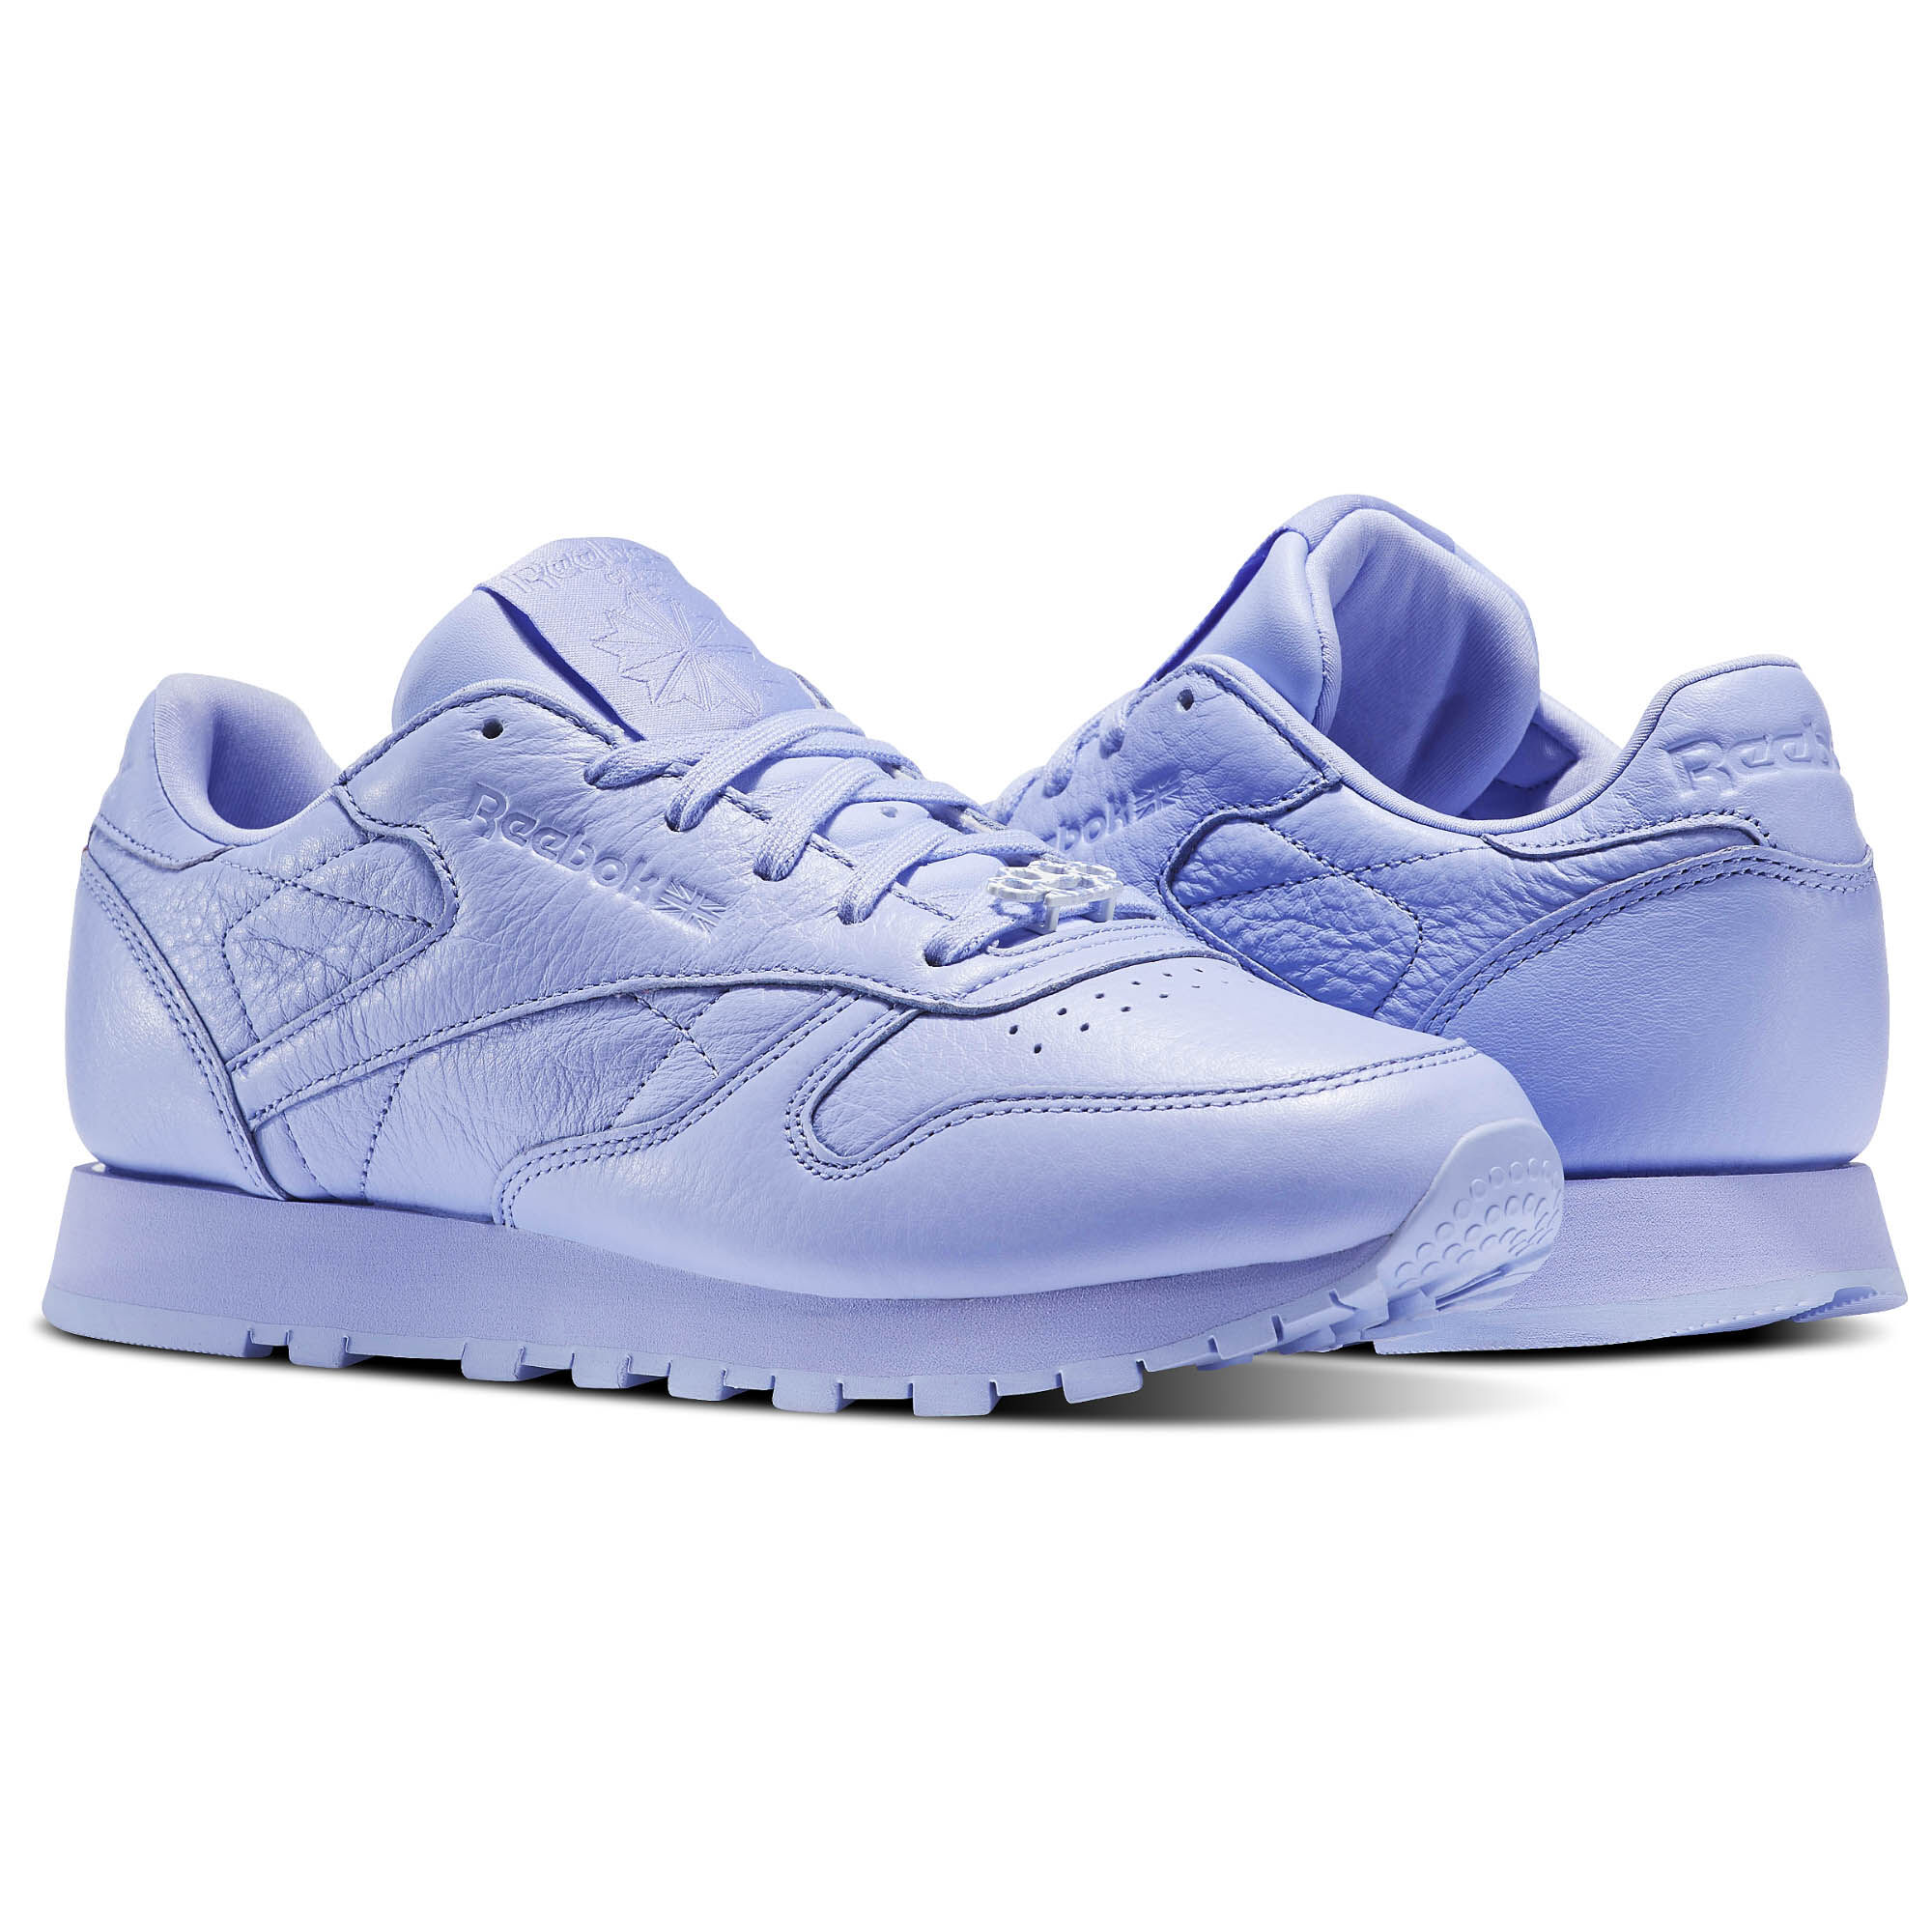 Reebok - Classic Leather Melted Metals Lilac Glow/Sleek Met BS7913